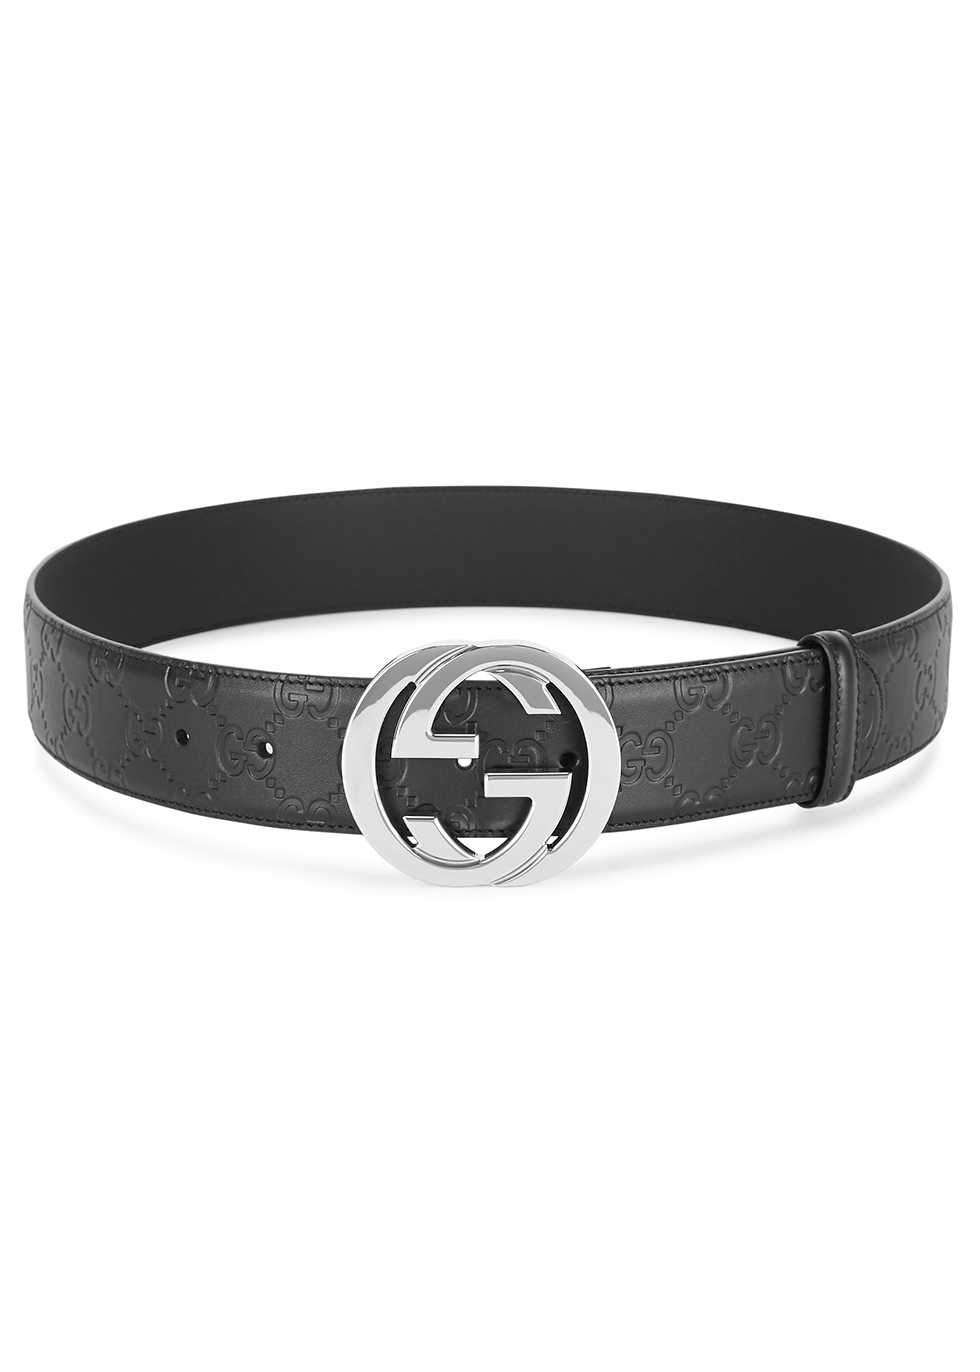 GG black logo-embossed leather belt